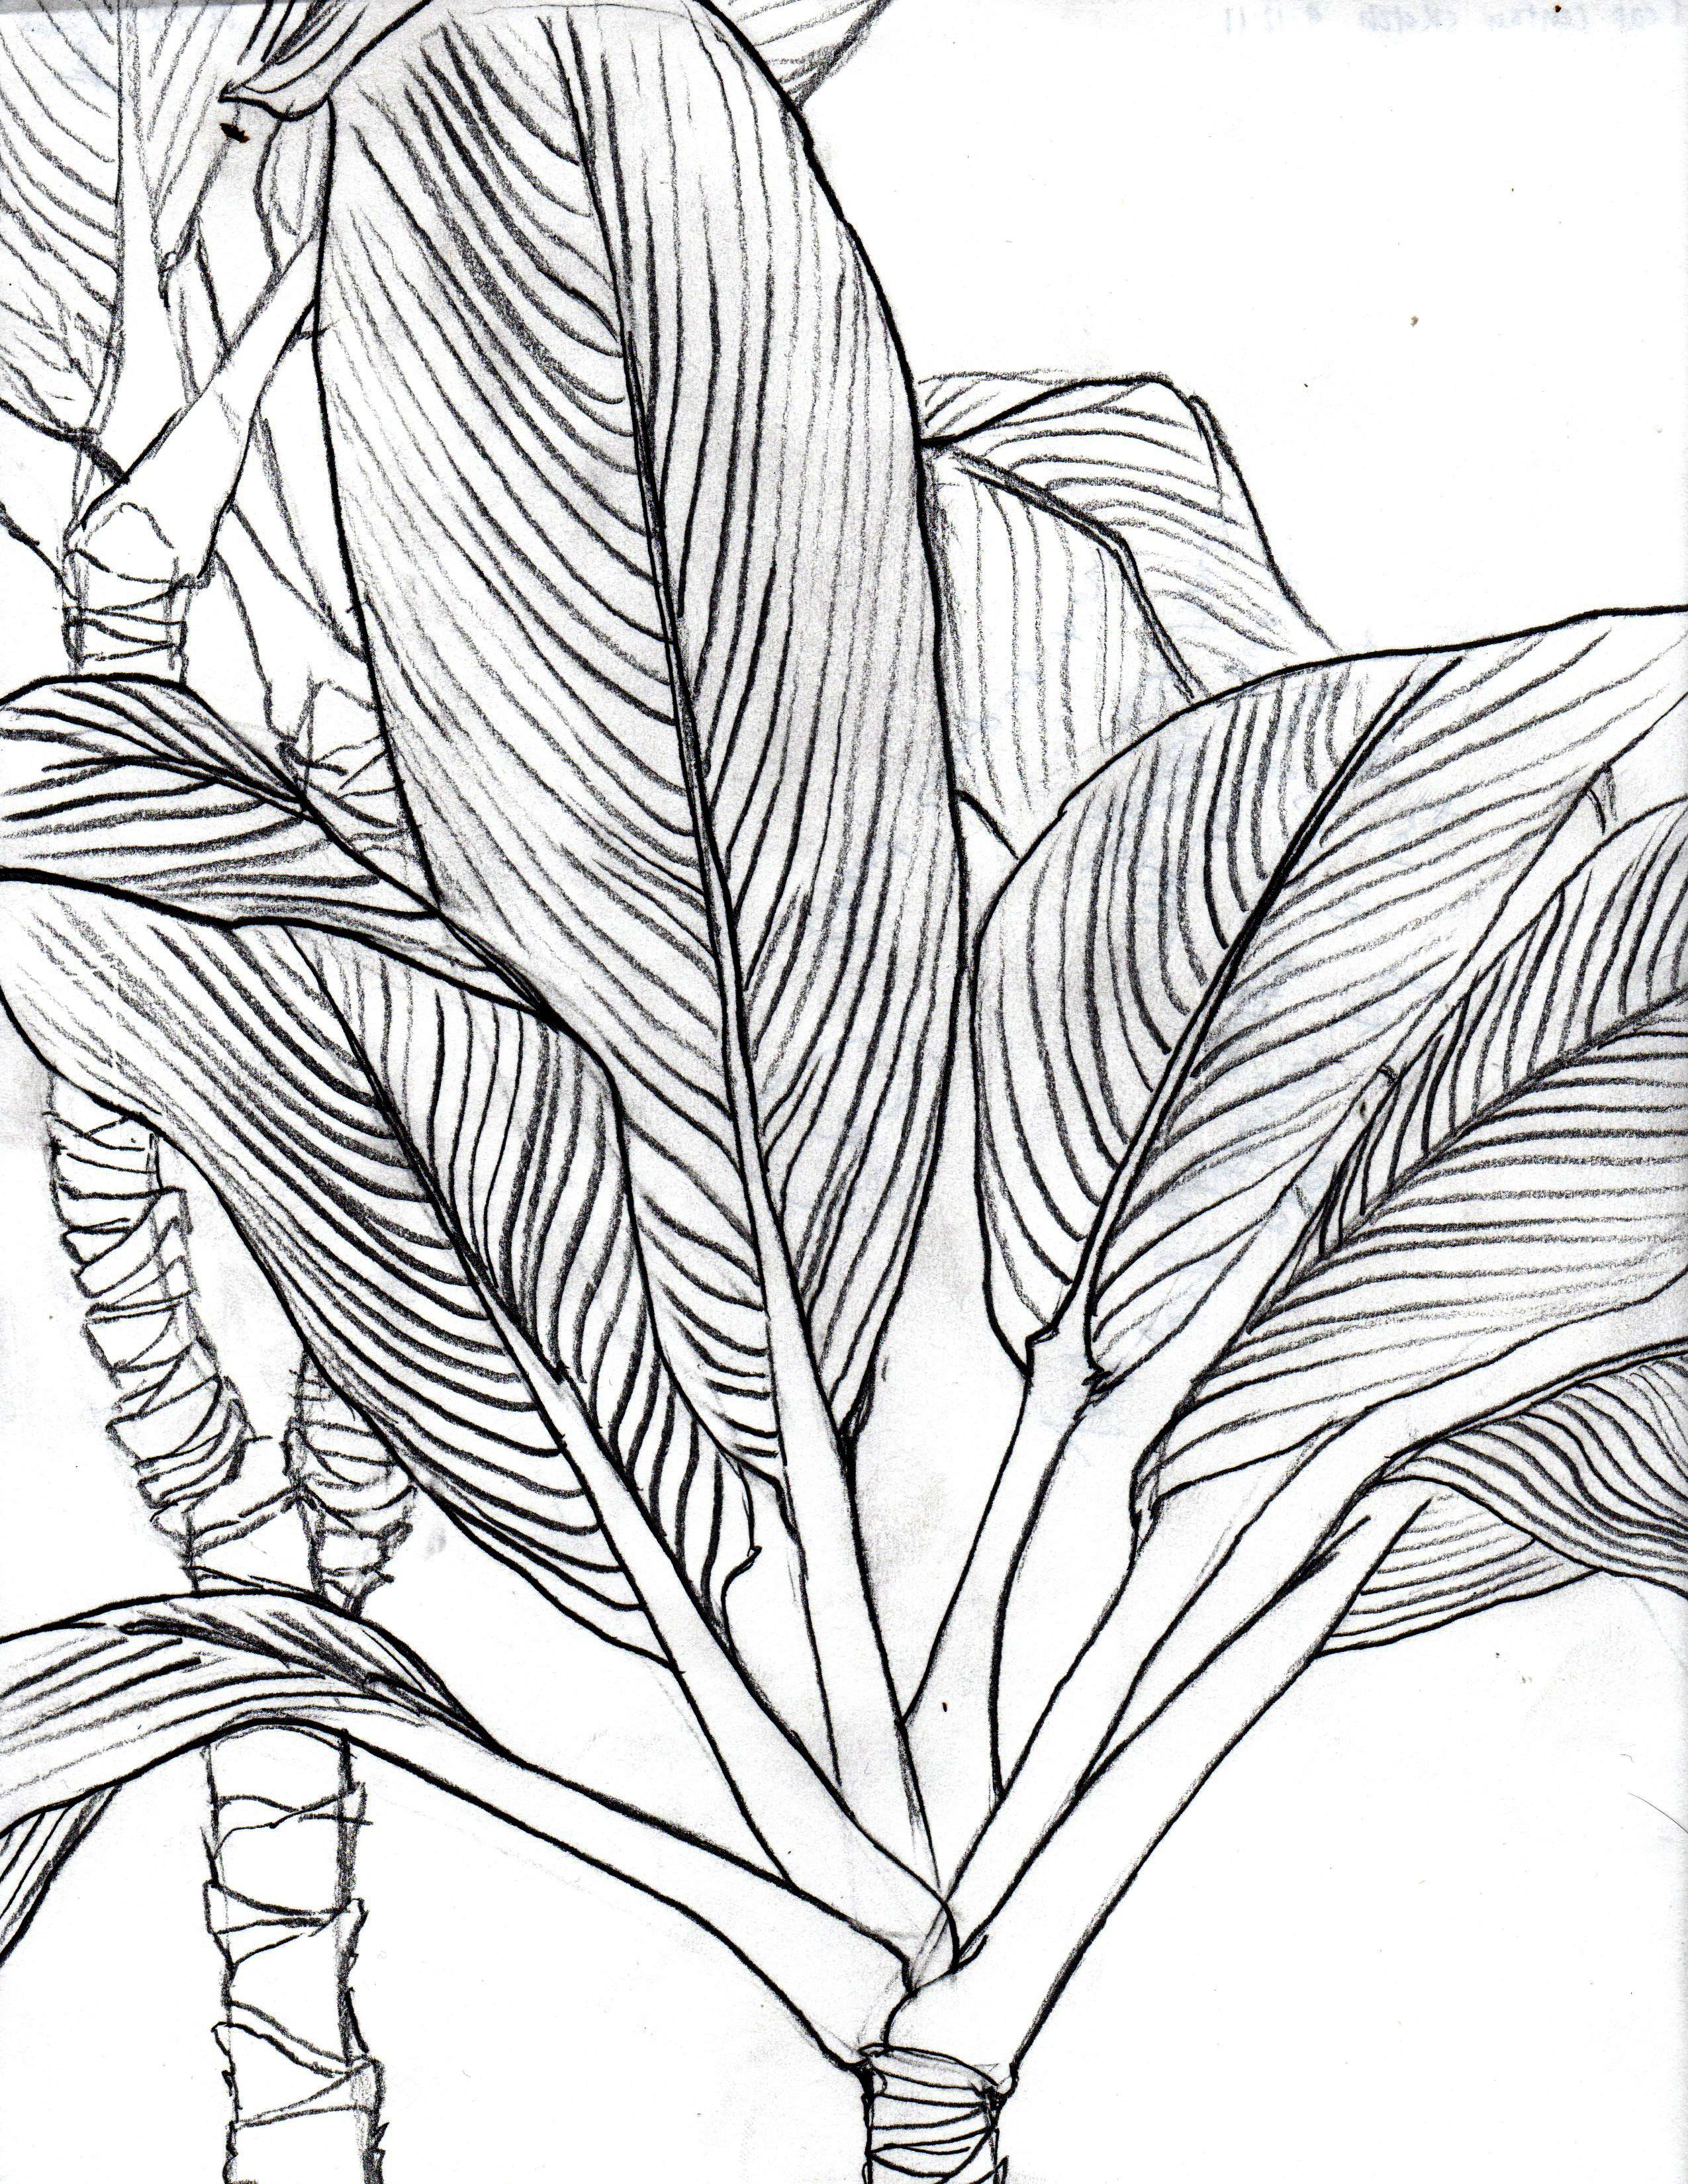 Contour Line Drawing Jobs : Line art drawings bing images coloring pages for